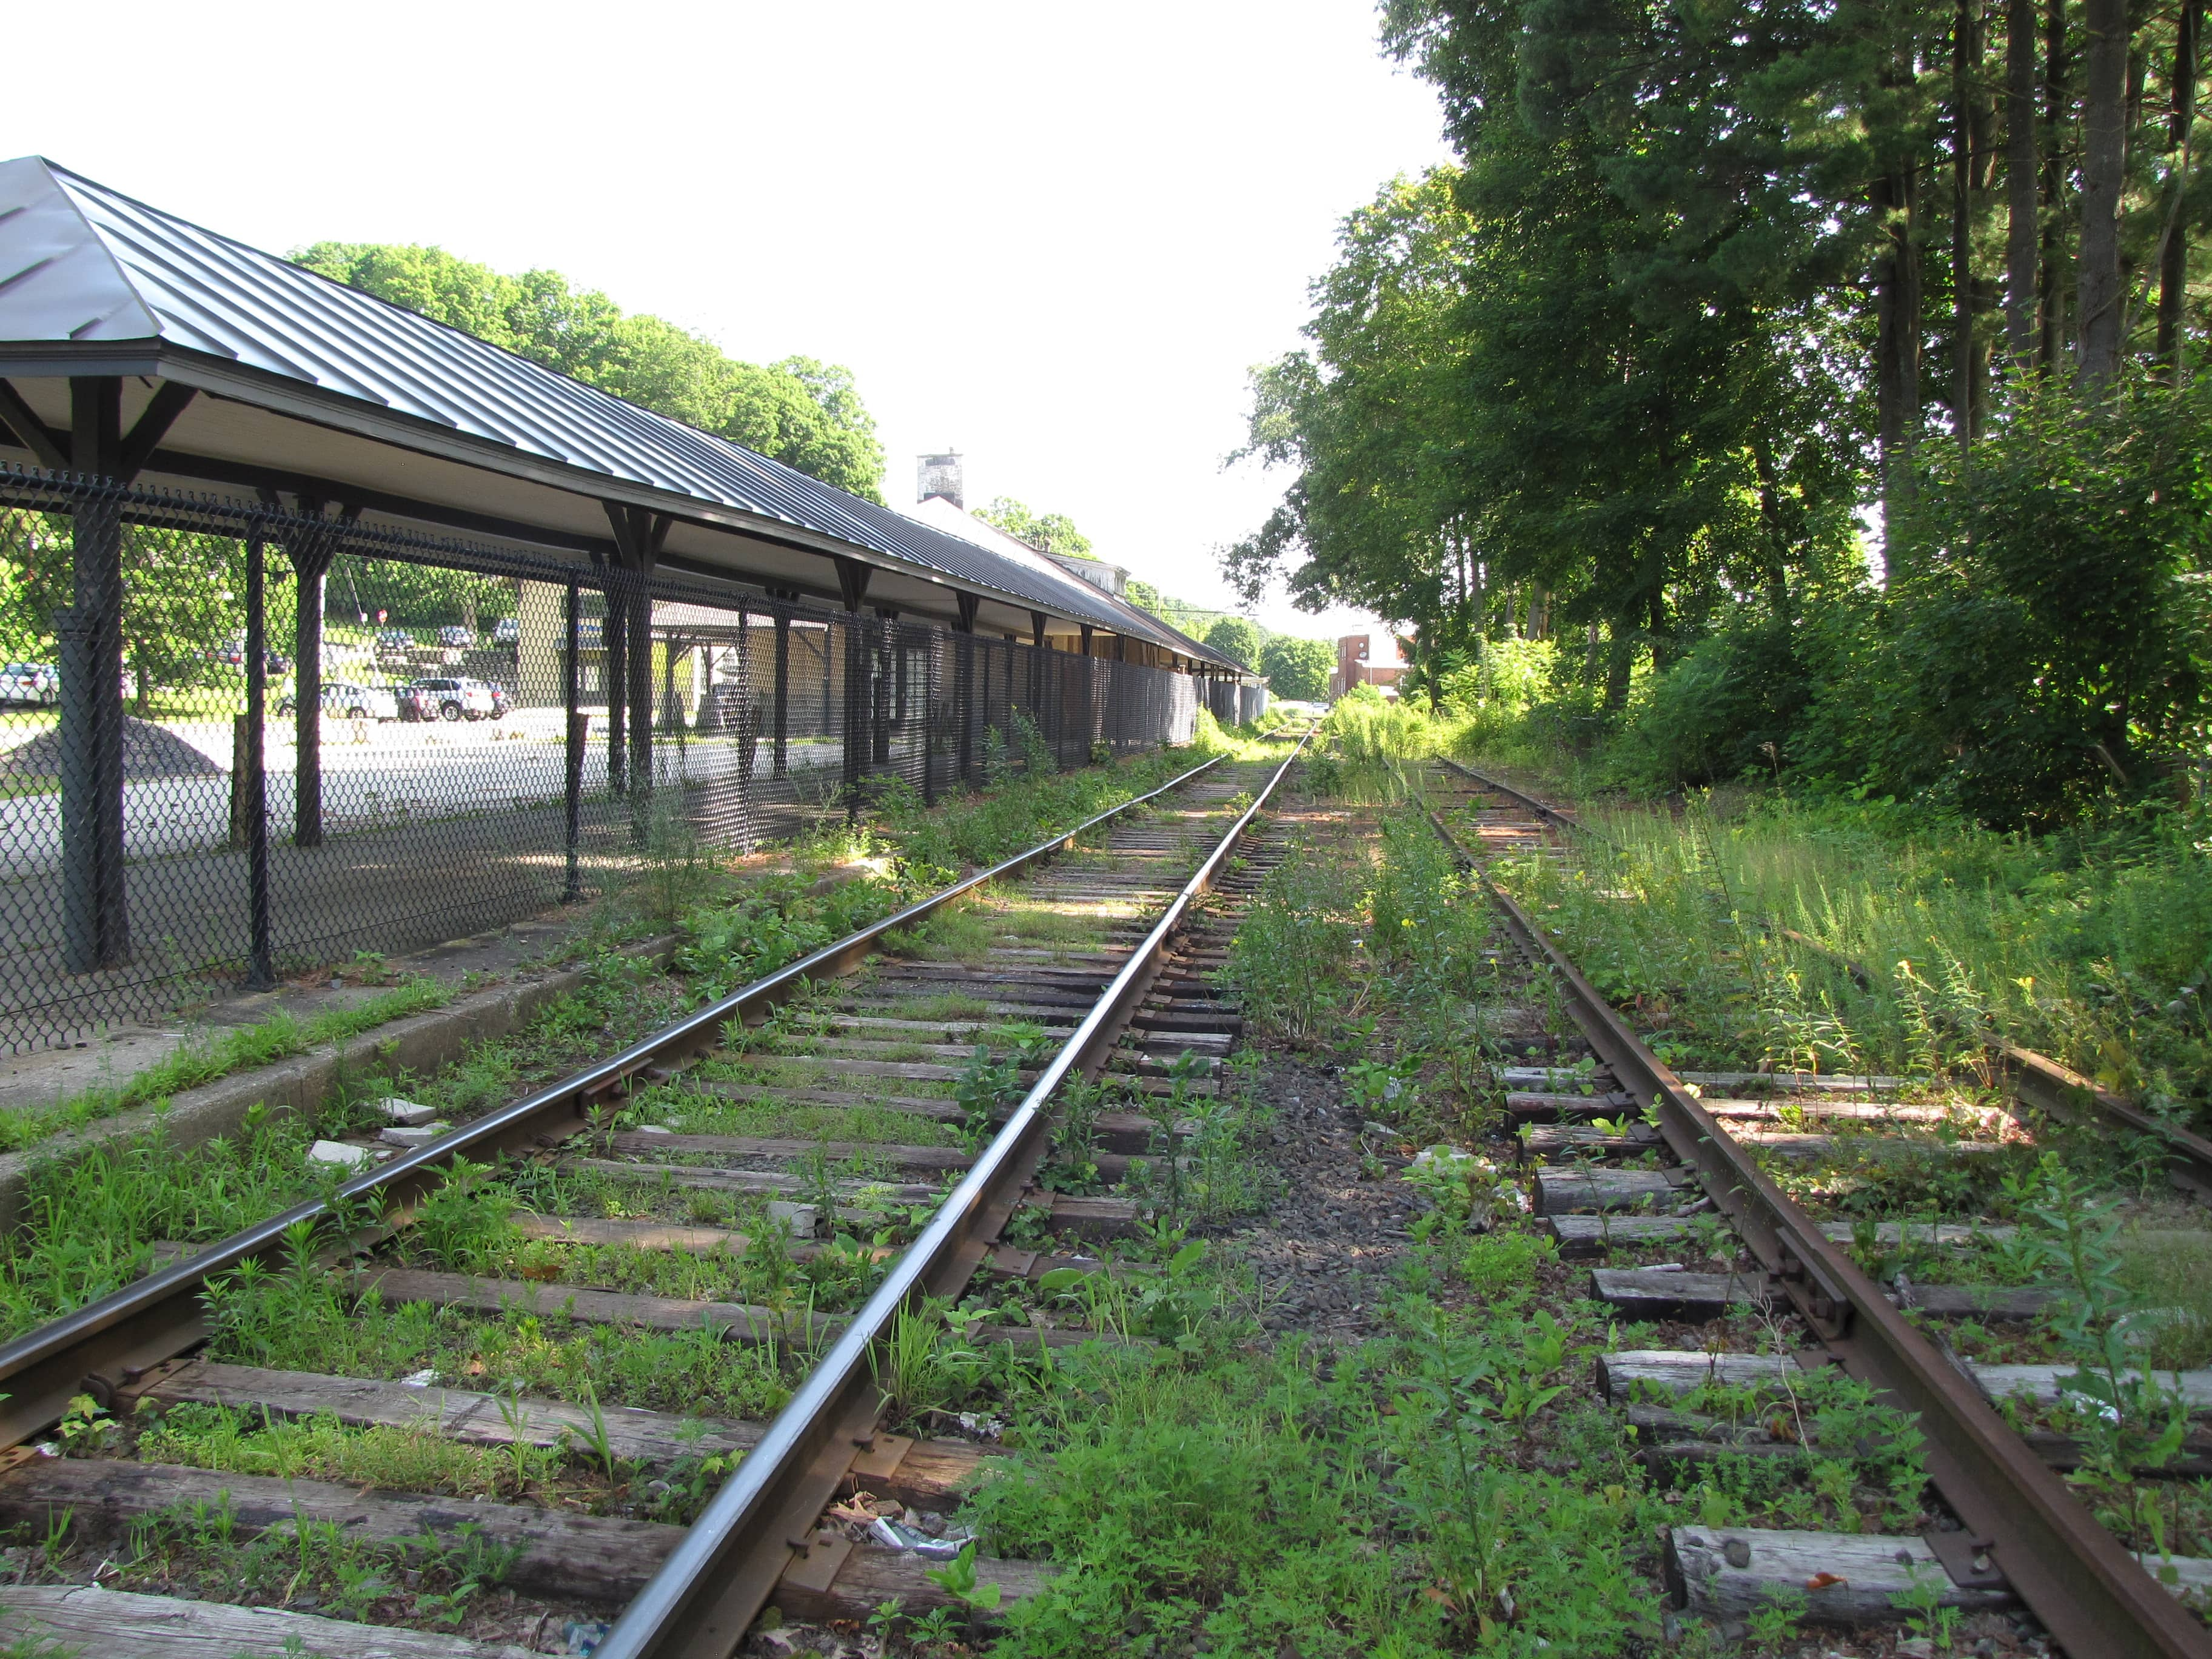 Overgrown tracks at the Great Barrington rail station.